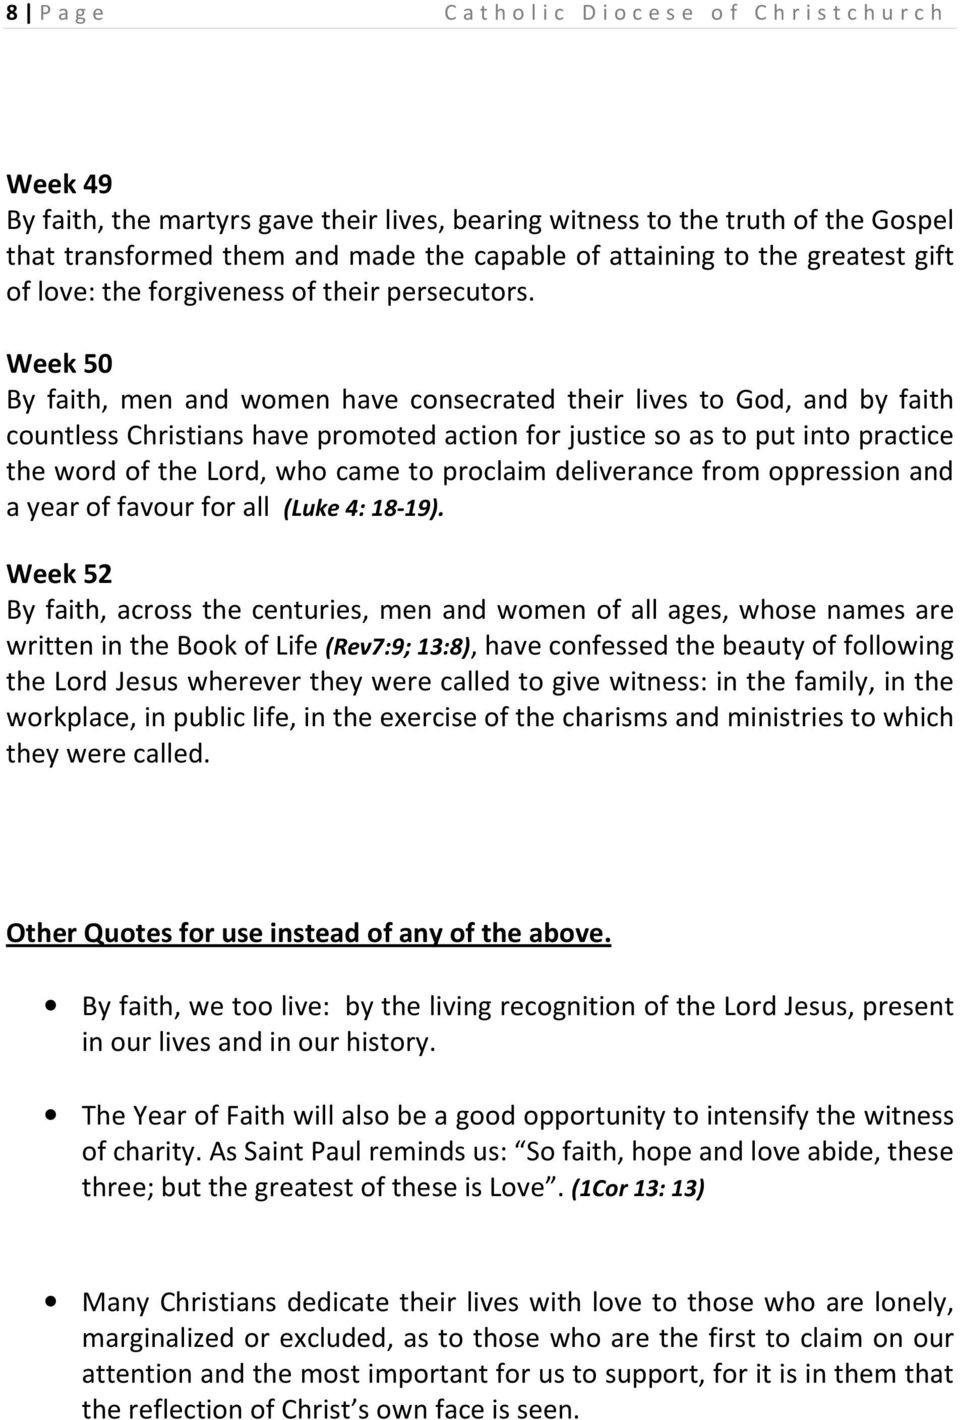 Week 50 By faith, men and women have consecrated their lives to God, and by faith countless Christians have promoted action for justice so as to put into practice the word of the Lord, who came to